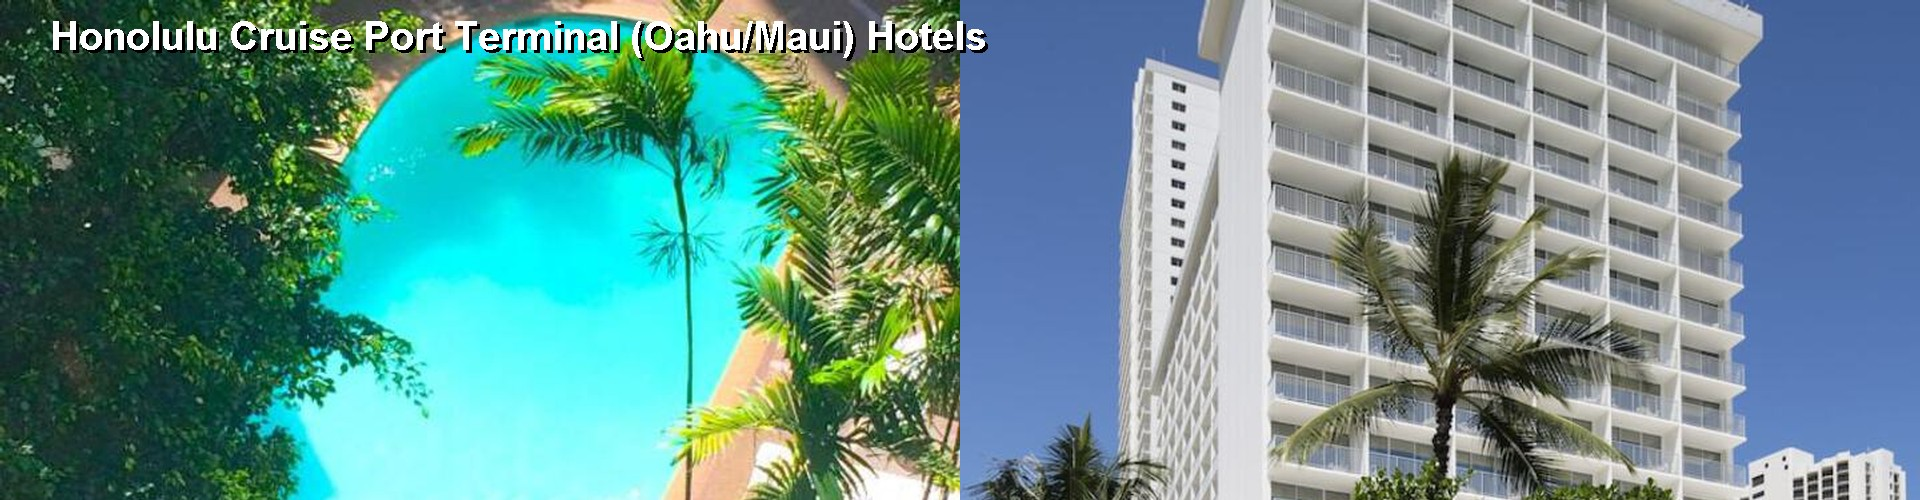 5 Best Hotels near Honolulu Cruise Port Terminal (Oahu/Maui)